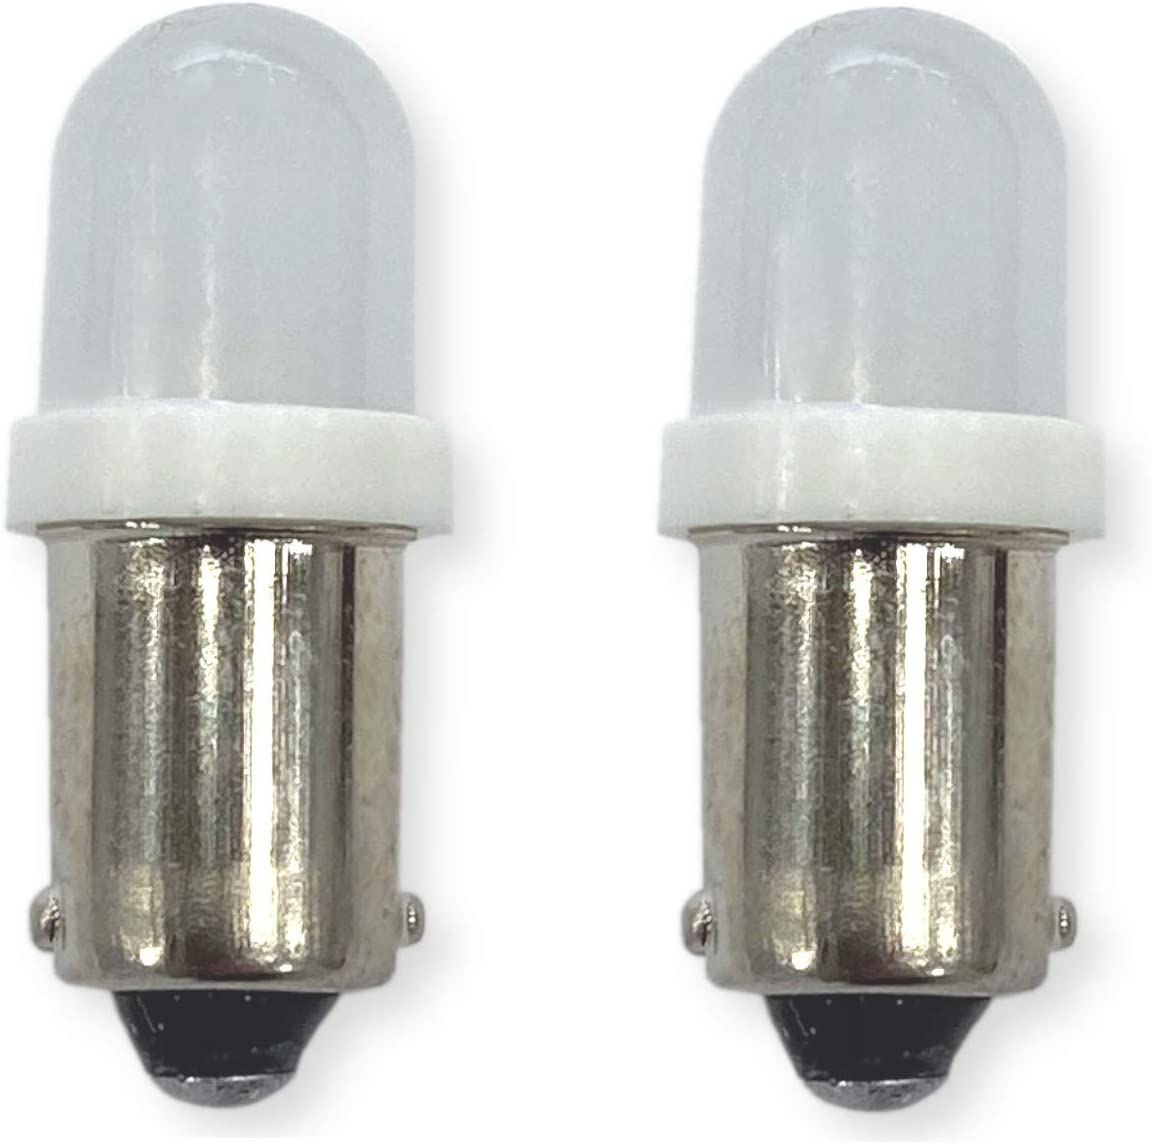 #1813, 1816 Miniature Bayonet Bulb LED Replacement | 12/14-Volt | Ba9s Base | Bulb Shape: T10 and T3 1/4 | Replaces Bulb Numbers: 1813 1815 1816 1893 1898 756 and Others